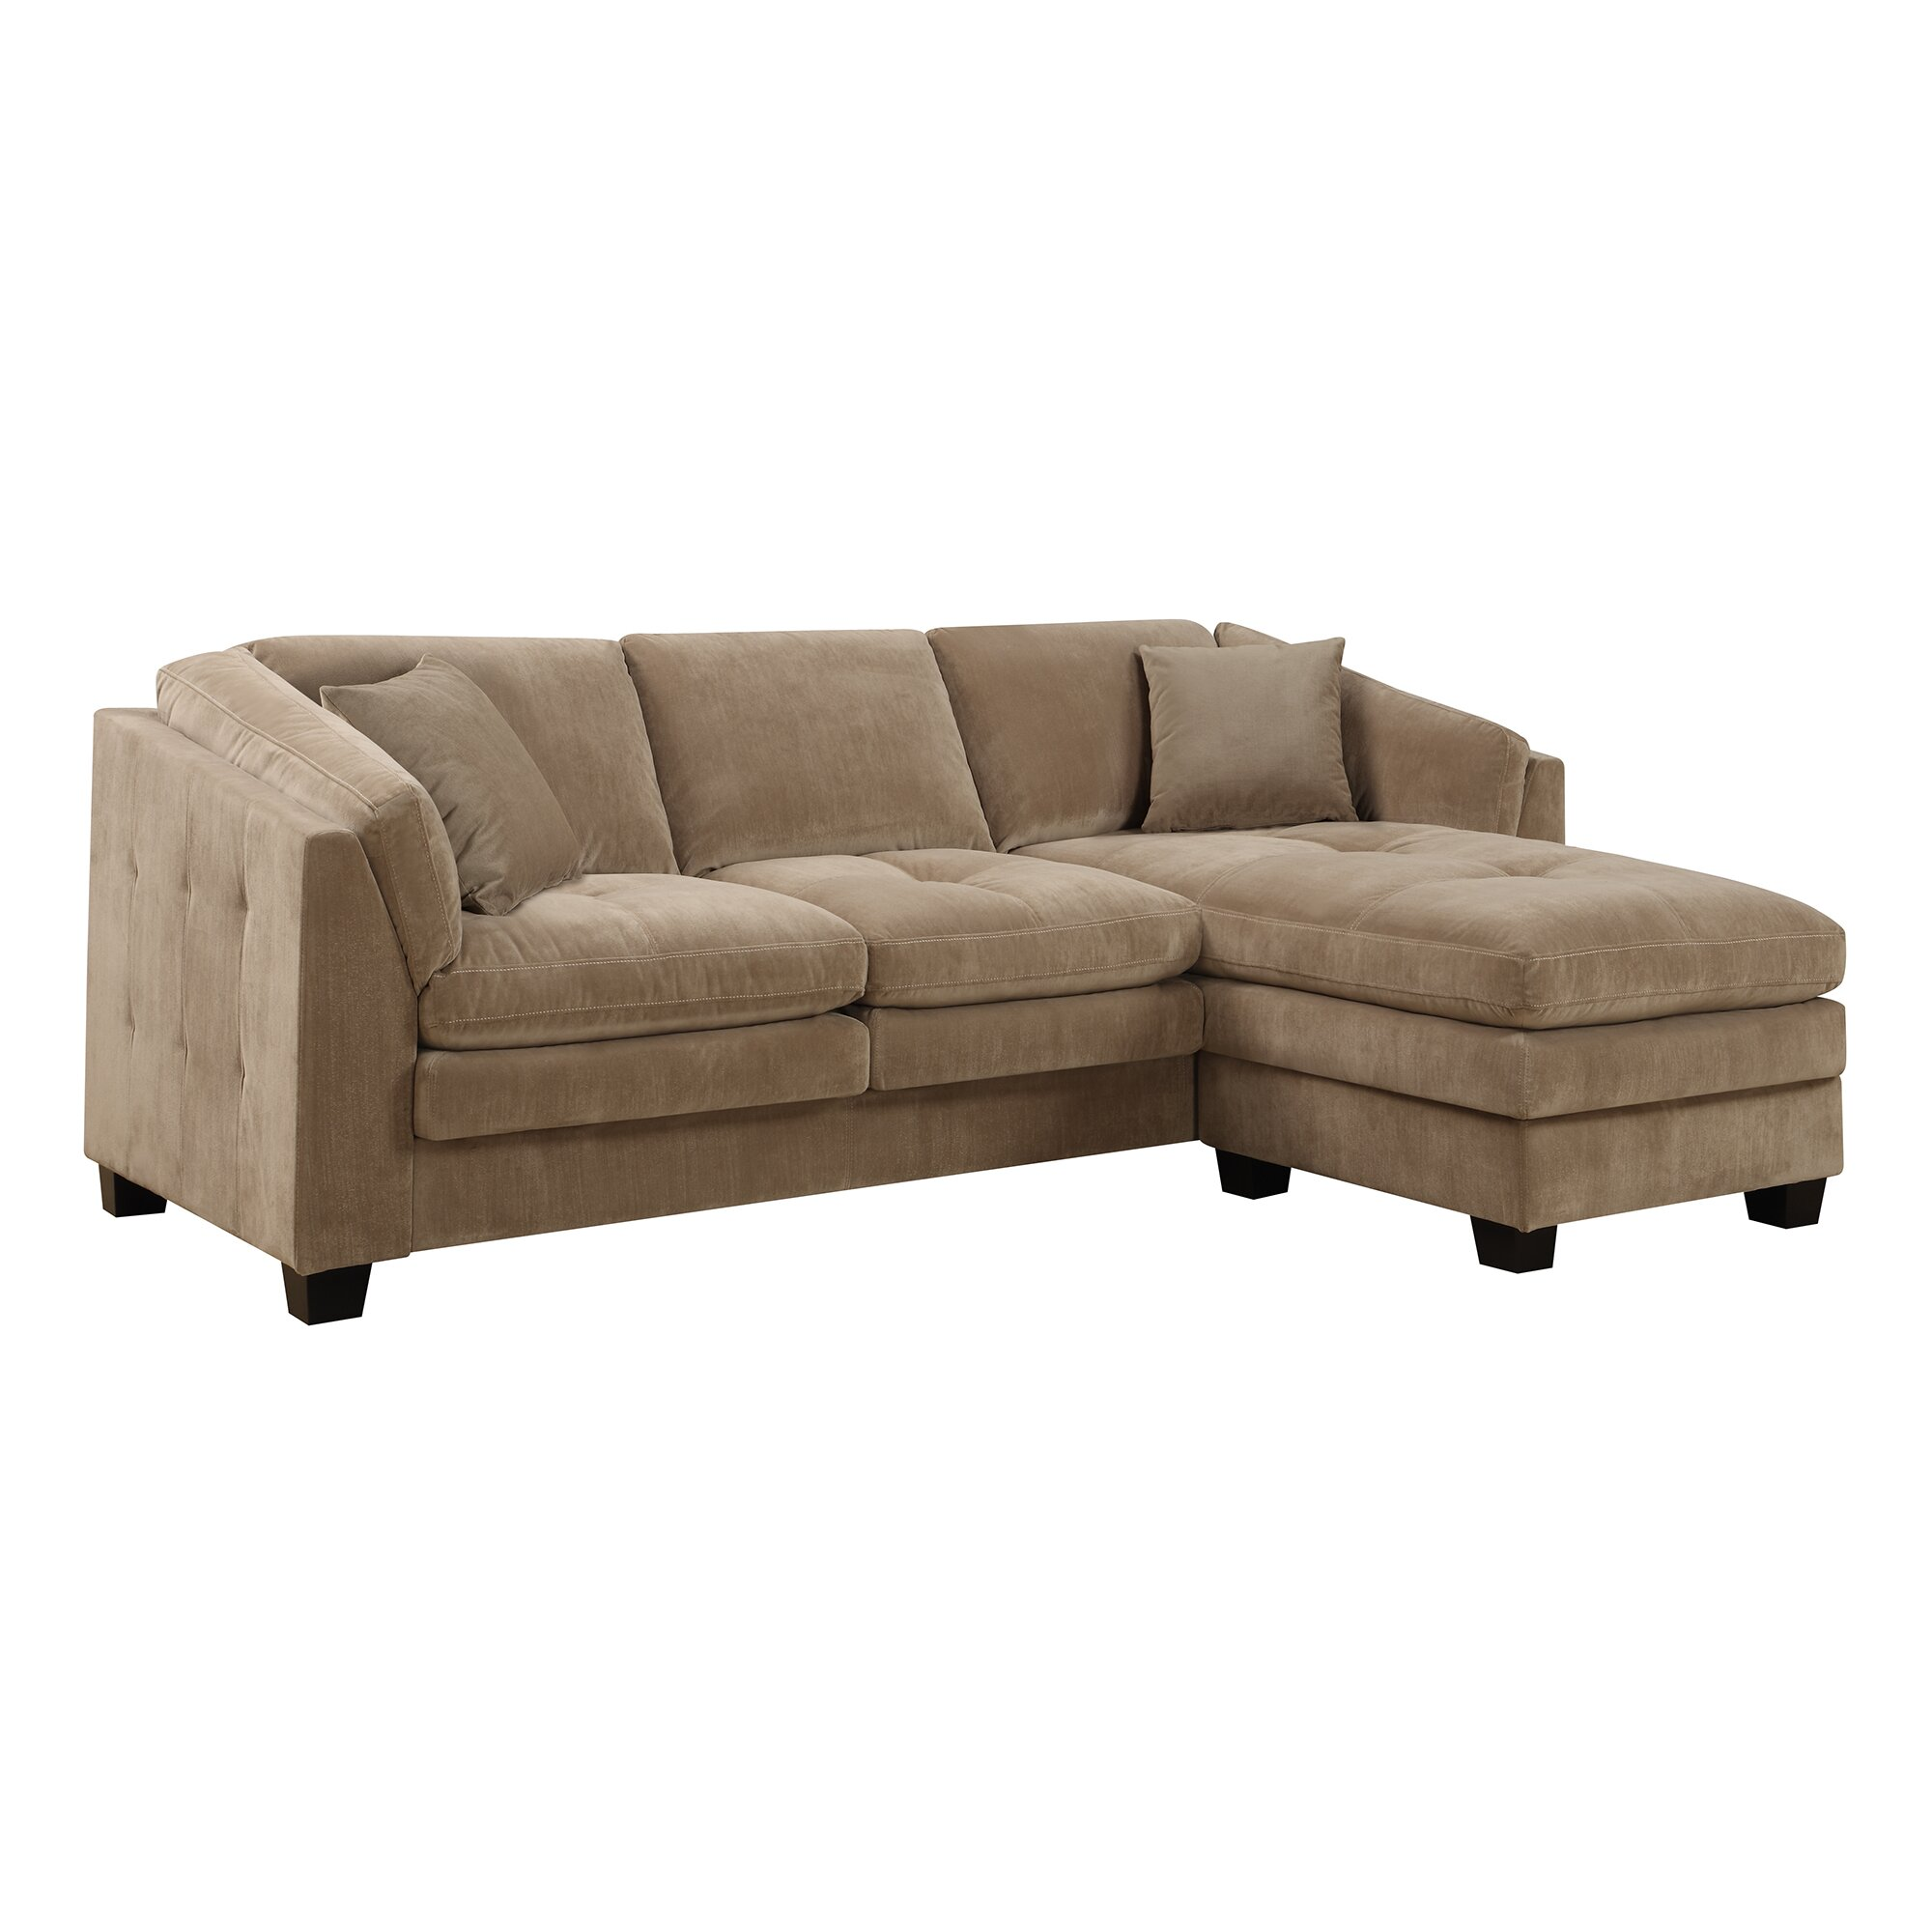 Co Sectional Sofa hmmi